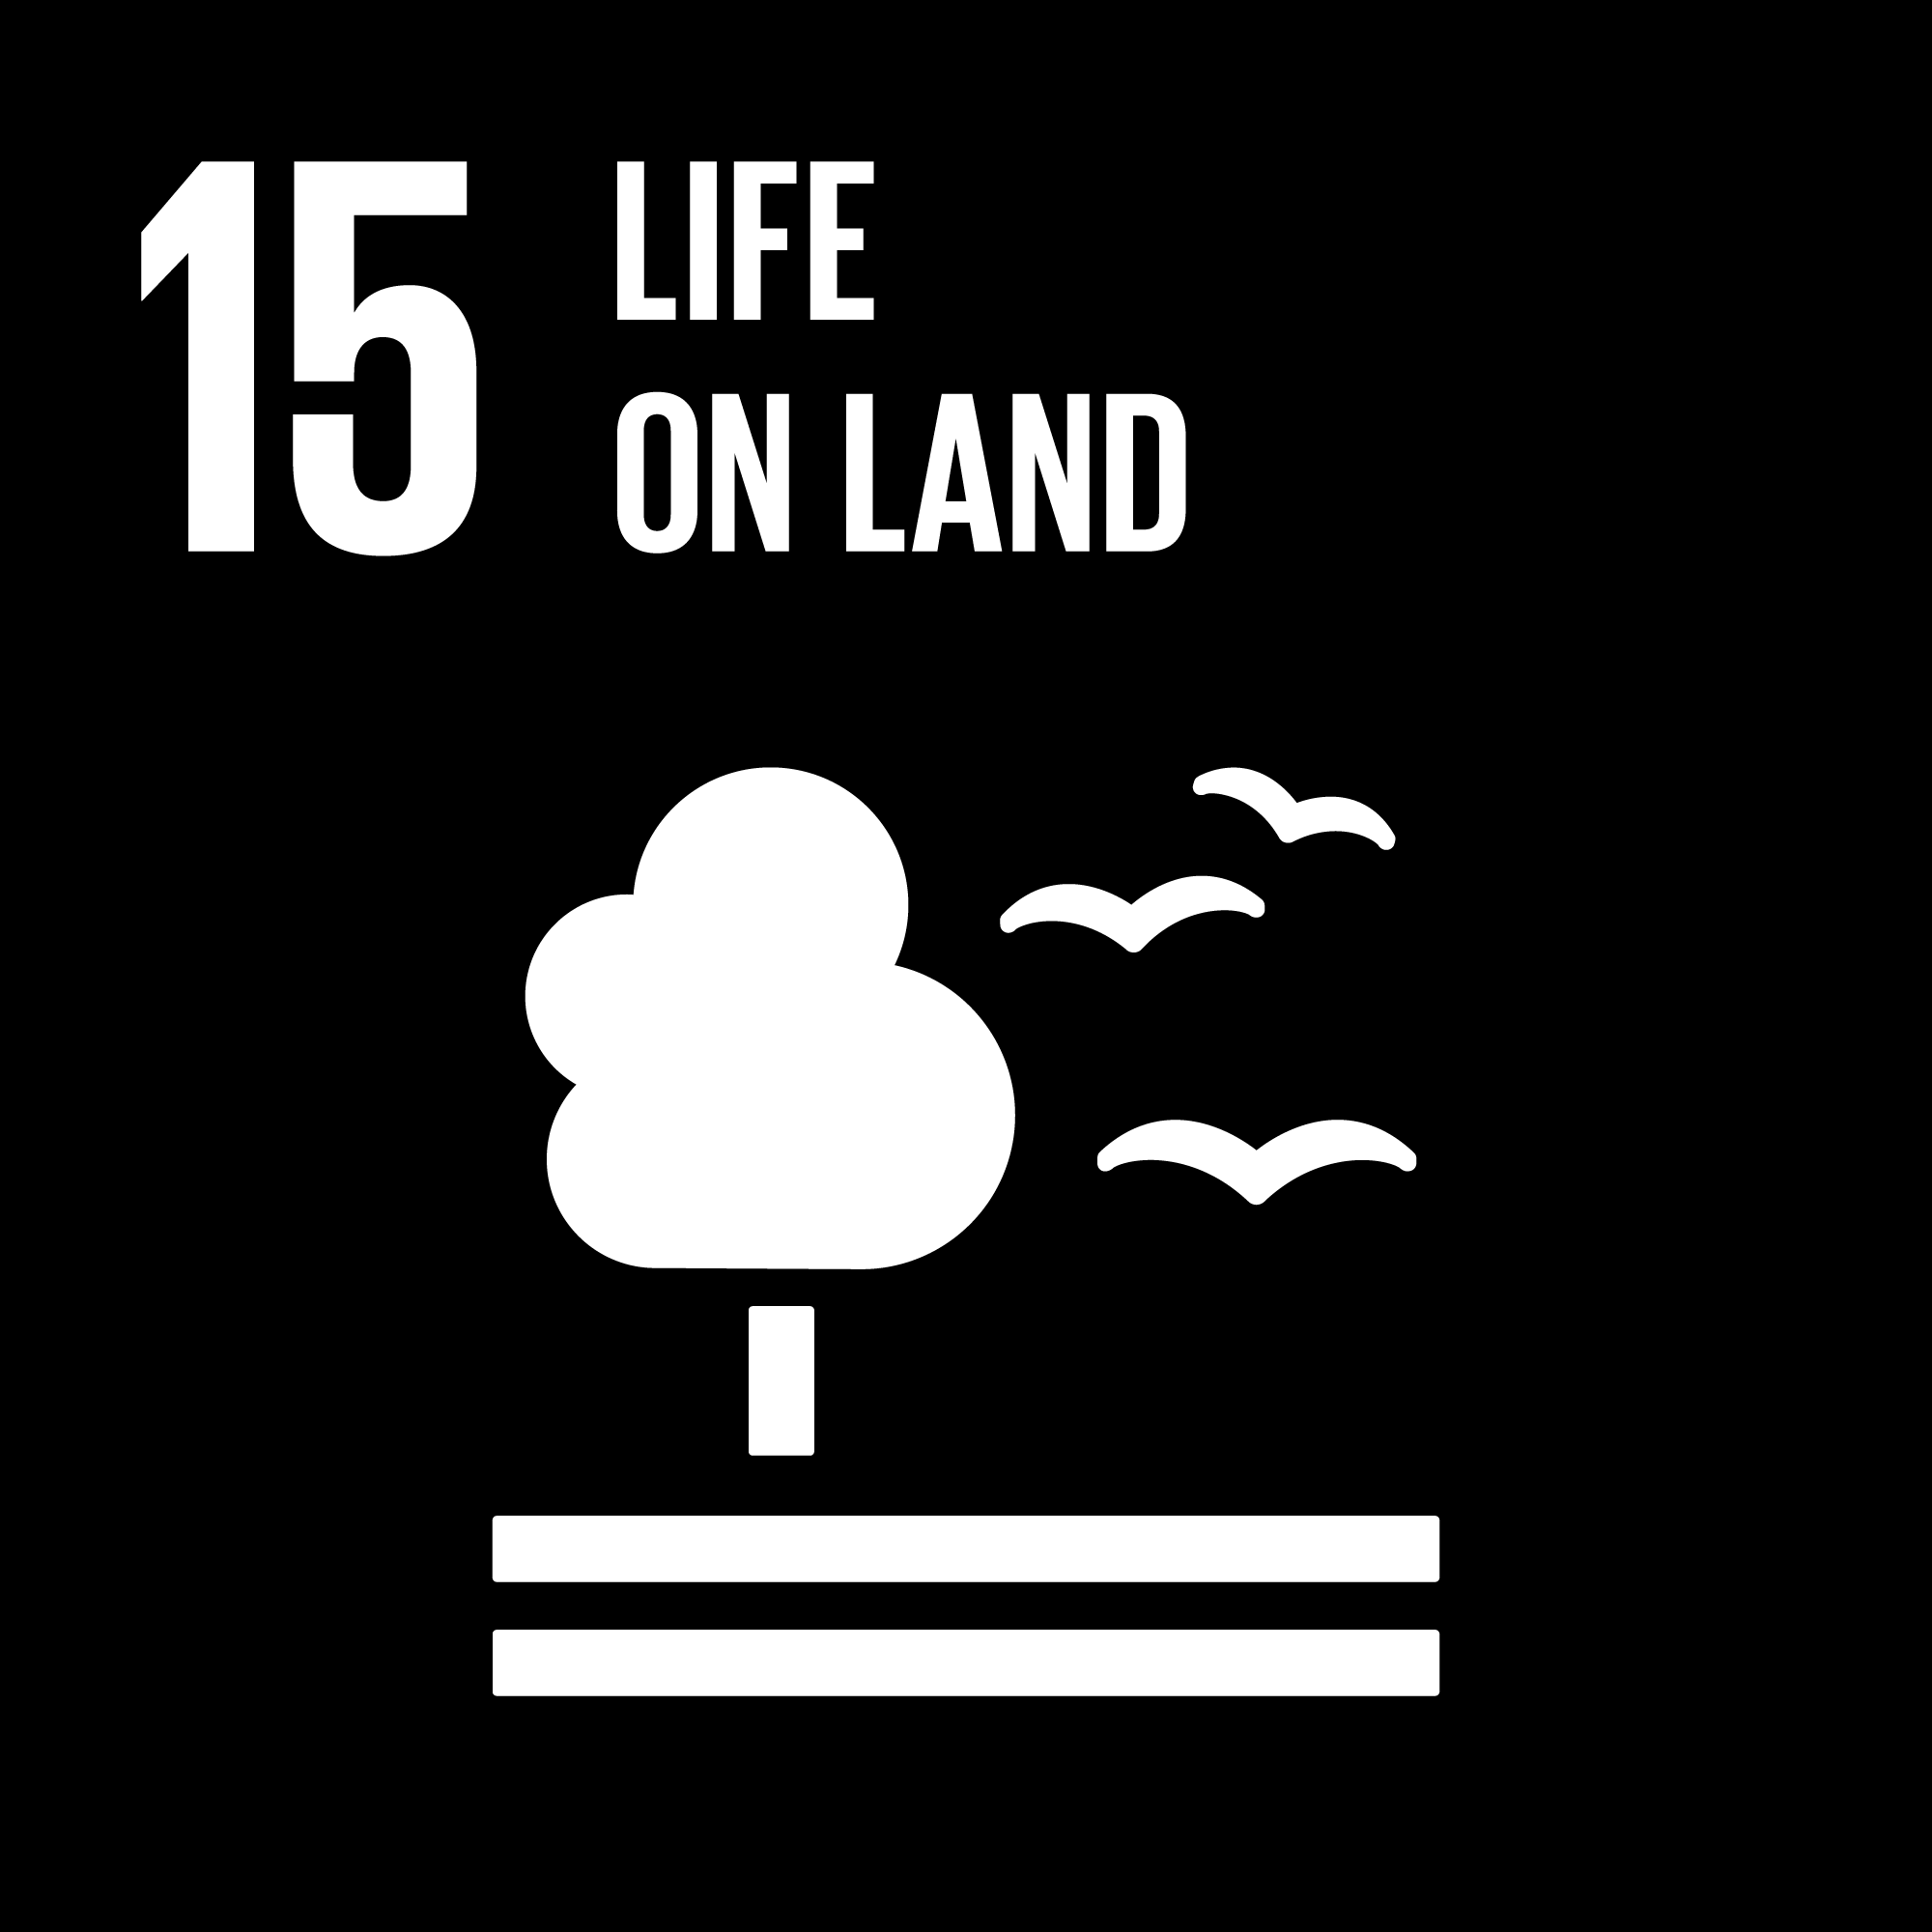 Sustainable Development Goals - 15 - Life on Land